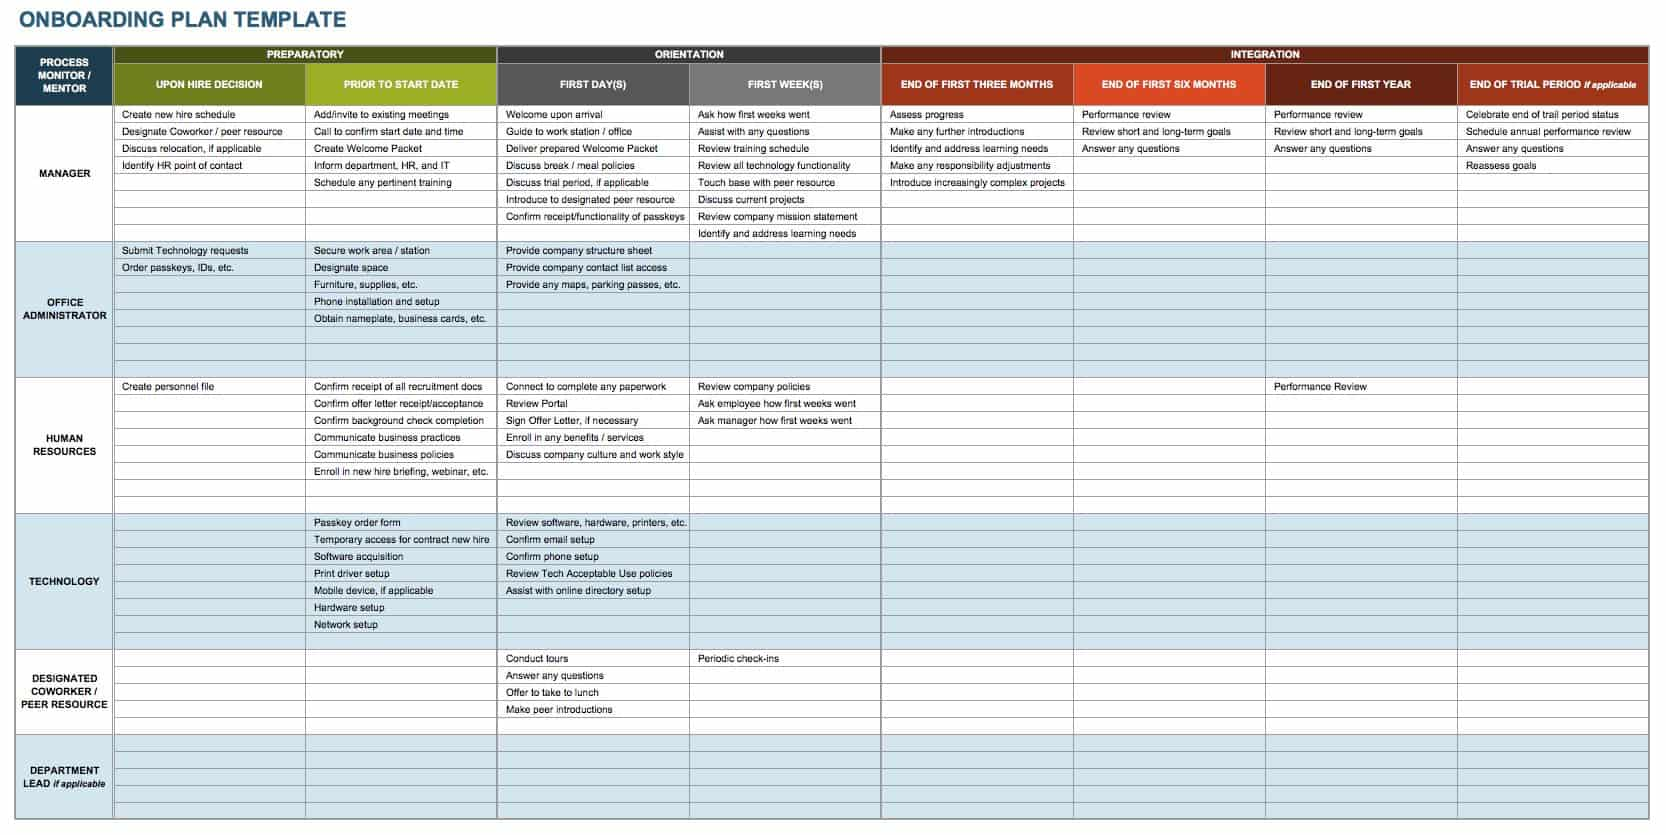 Onboarding Training Plan Template